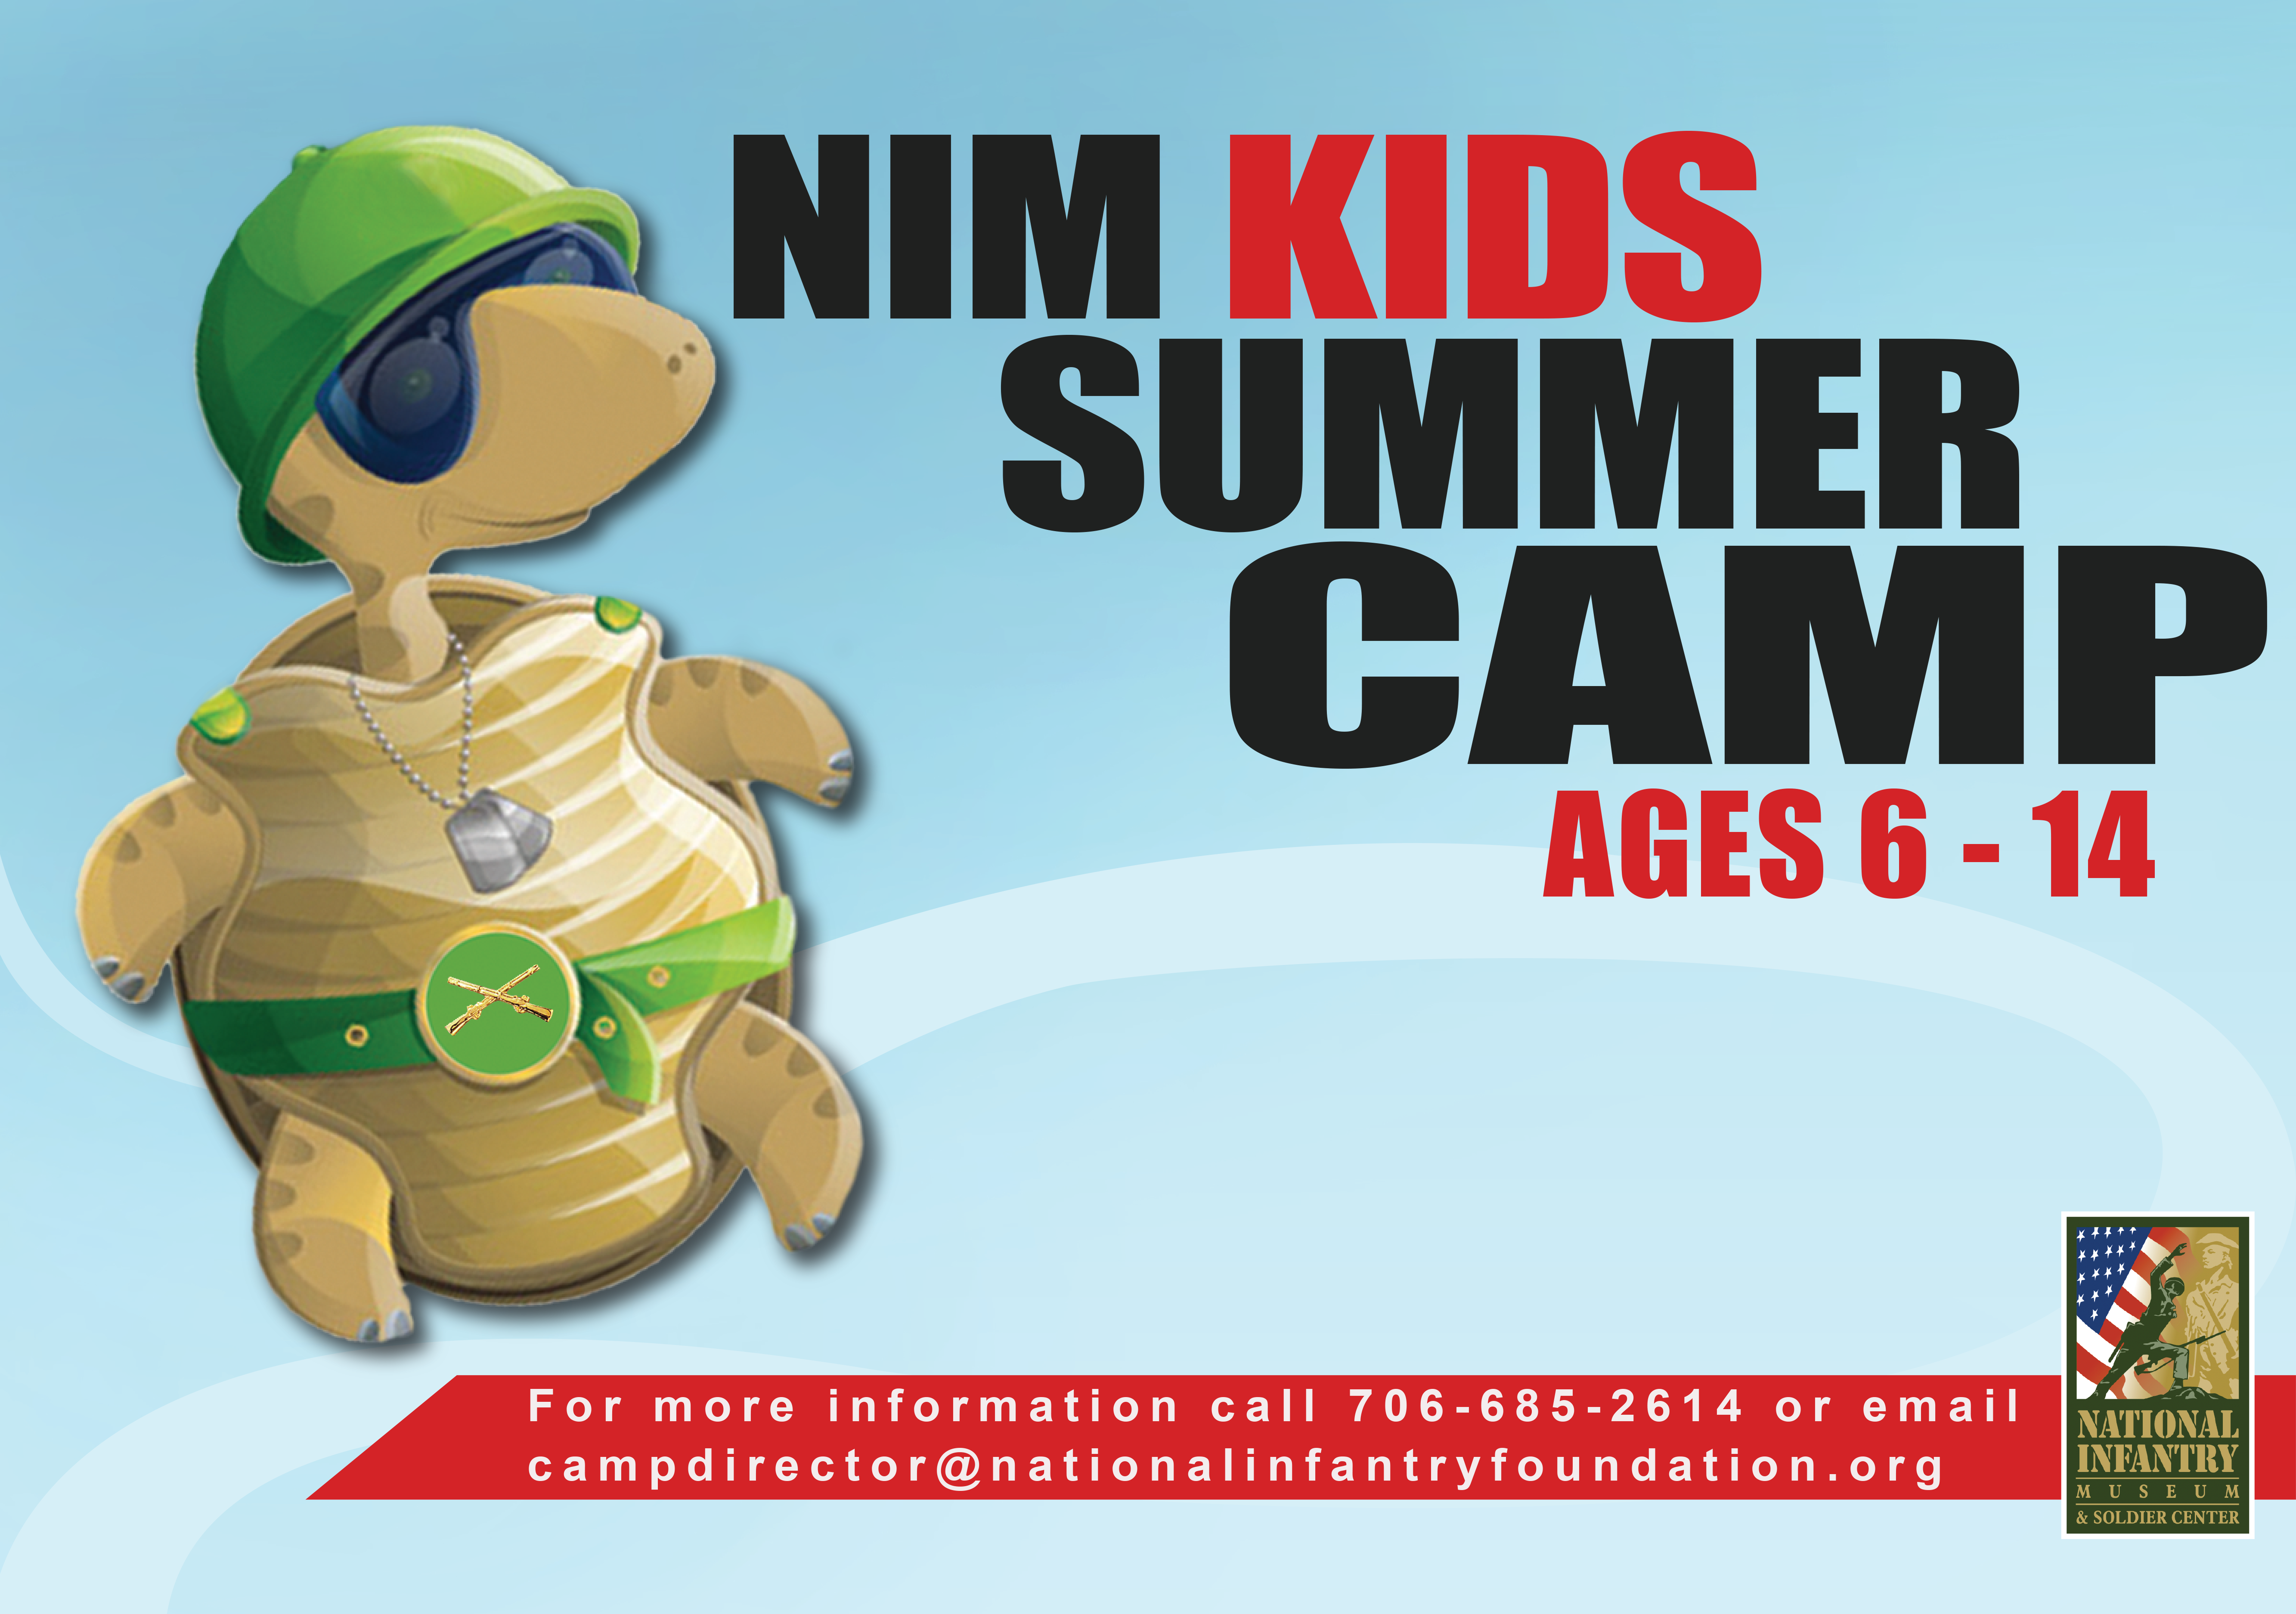 NIM Kids Summer Camp